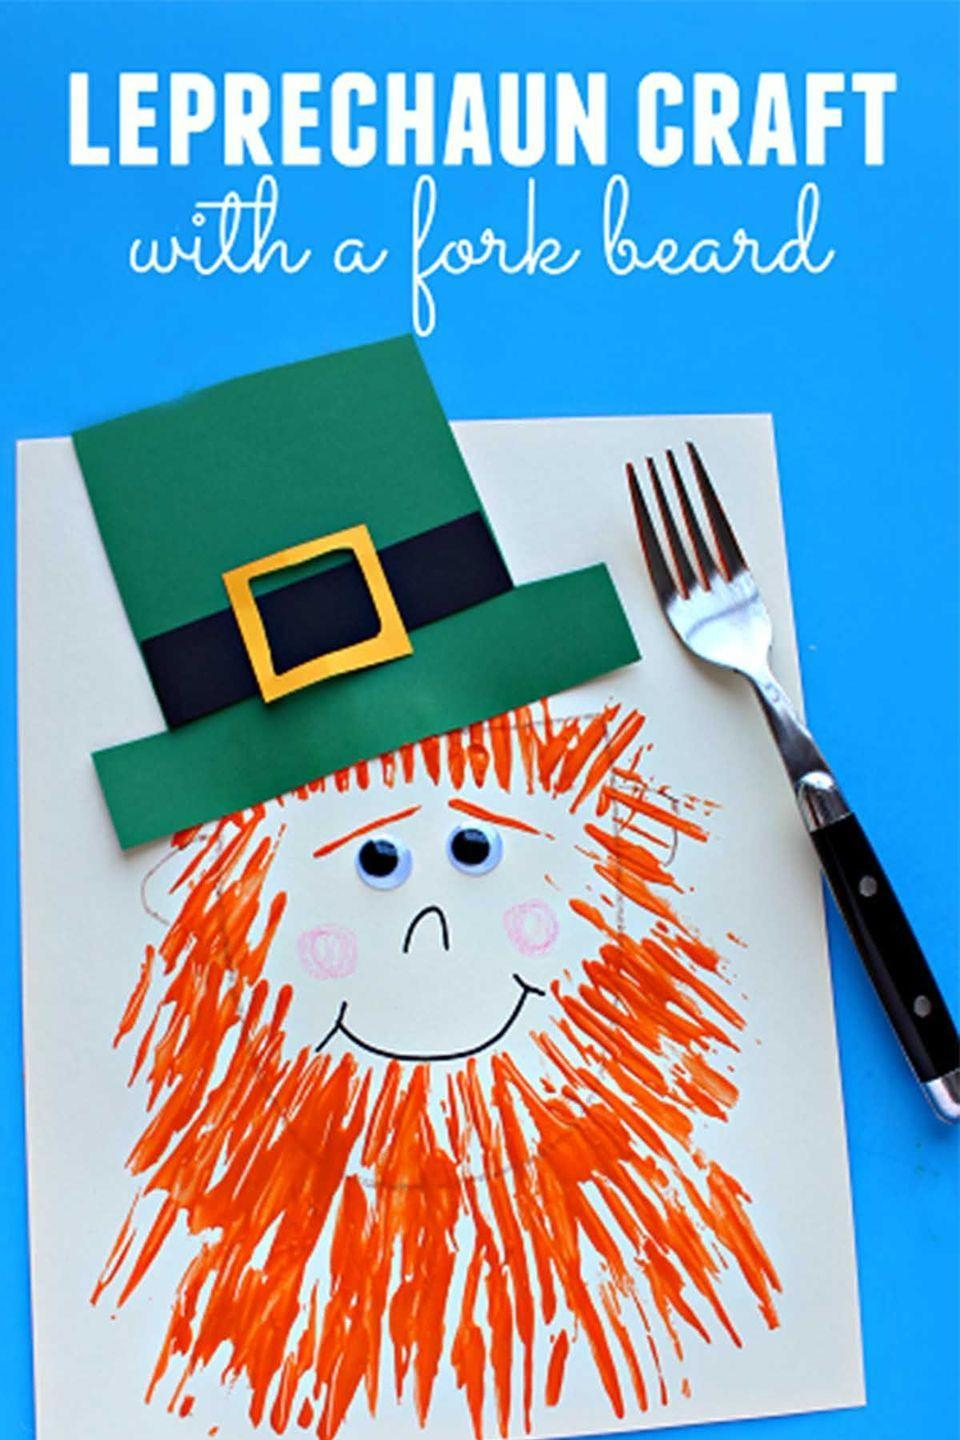 """<p>Your little ones can easily use a fork to recreate this <a href=""""https://www.womansday.com/relationships/family-friends/a54141/dad-turns-6-month-old-son-into-a-leprechaun/"""" rel=""""nofollow noopener"""" target=""""_blank"""" data-ylk=""""slk:leprechaun craft"""" class=""""link rapid-noclick-resp"""">leprechaun craft</a>.</p><p><em>Get the tutorial at <a href=""""http://www.craftymorning.com/leprechaun-craft-with-a-fork-print-beard/"""" rel=""""nofollow noopener"""" target=""""_blank"""" data-ylk=""""slk:Crafty Morning"""" class=""""link rapid-noclick-resp"""">Crafty Morning</a>.</em> </p>"""